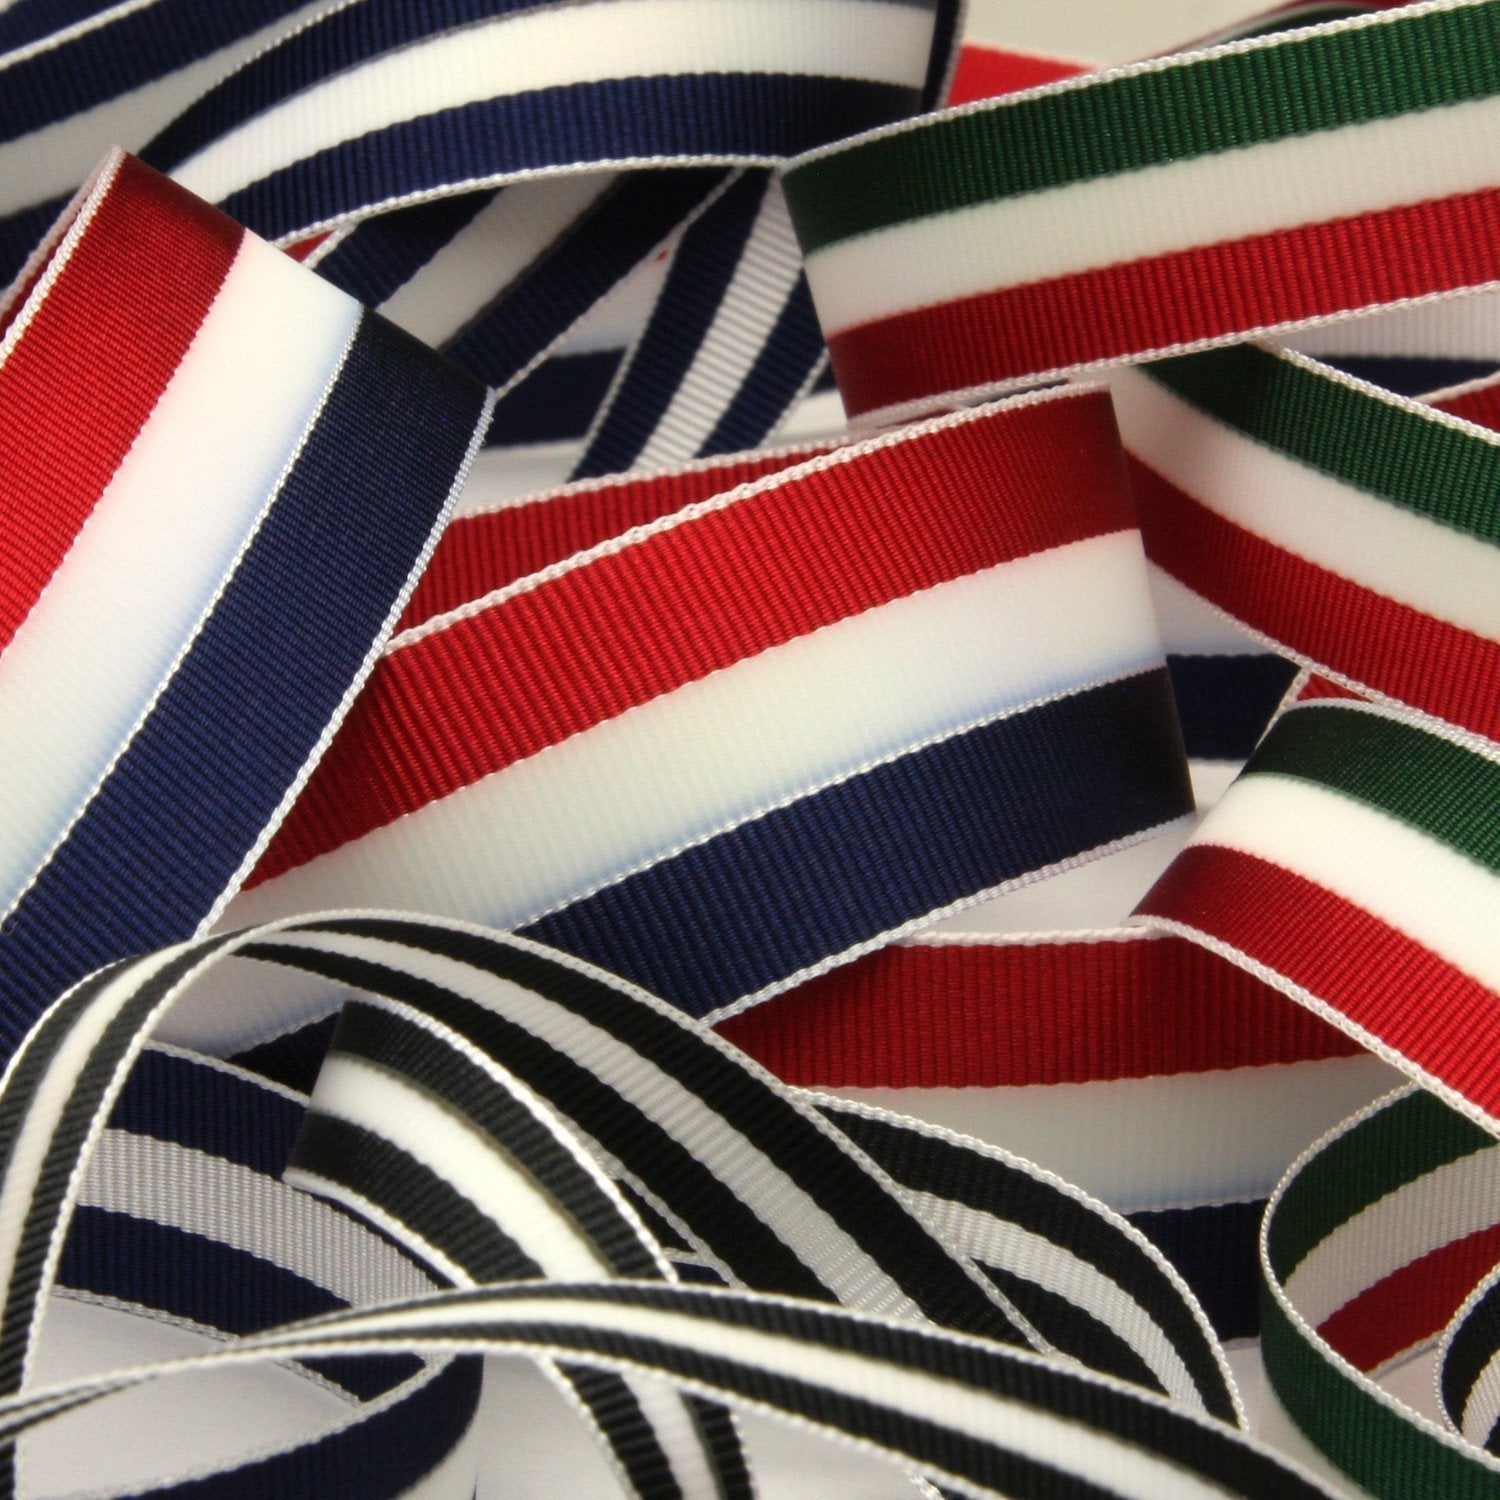 FUJIYAMA RIBBON [Wholesale] Aurora Reflect Grosgrain Ribbon 15mm 30 Meters Roll Navy Blue / White / Navy Blue